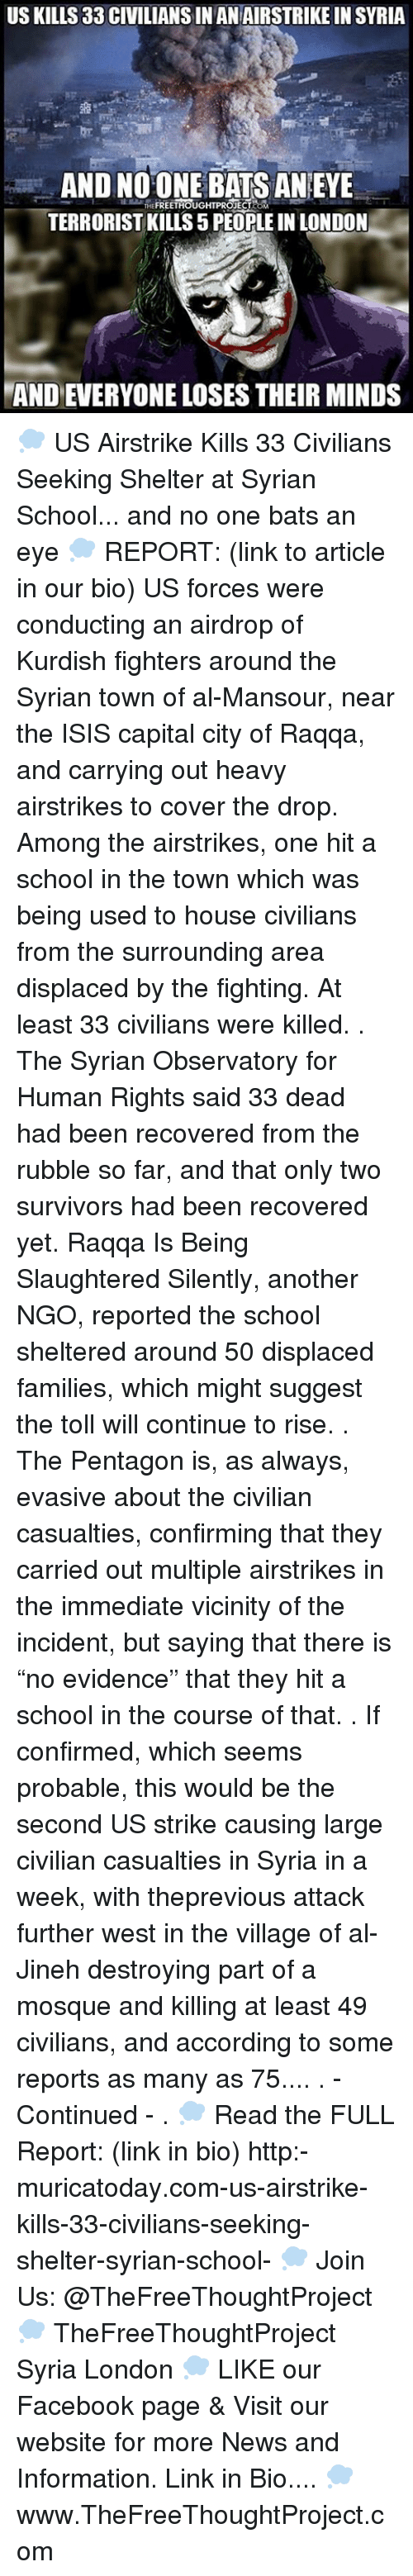 "Memes, 🤖, and Als: USKILLS 33 CIVILIANS IN ANIAIRSTRIKE IN SYRIA  AND THE  FREETHOUGHTPROJECT  BATS AN EYE  TERRORIST KILLS 5 PEOPLEIN LONDON  MANDEVERYONE LOSES THEIR MINDS 💭 US Airstrike Kills 33 Civilians Seeking Shelter at Syrian School... and no one bats an eye 💭 REPORT: (link to article in our bio) US forces were conducting an airdrop of Kurdish fighters around the Syrian town of al-Mansour, near the ISIS capital city of Raqqa, and carrying out heavy airstrikes to cover the drop. Among the airstrikes, one hit a school in the town which was being used to house civilians from the surrounding area displaced by the fighting. At least 33 civilians were killed. . The Syrian Observatory for Human Rights said 33 dead had been recovered from the rubble so far, and that only two survivors had been recovered yet. Raqqa Is Being Slaughtered Silently, another NGO, reported the school sheltered around 50 displaced families, which might suggest the toll will continue to rise. . The Pentagon is, as always, evasive about the civilian casualties, confirming that they carried out multiple airstrikes in the immediate vicinity of the incident, but saying that there is ""no evidence"" that they hit a school in the course of that. . If confirmed, which seems probable, this would be the second US strike causing large civilian casualties in Syria in a week, with theprevious attack further west in the village of al-Jineh destroying part of a mosque and killing at least 49 civilians, and according to some reports as many as 75.... . - Continued - . 💭 Read the FULL Report: (link in bio) http:-muricatoday.com-us-airstrike-kills-33-civilians-seeking-shelter-syrian-school- 💭 Join Us: @TheFreeThoughtProject 💭 TheFreeThoughtProject Syria London 💭 LIKE our Facebook page & Visit our website for more News and Information. Link in Bio.... 💭 www.TheFreeThoughtProject.com"